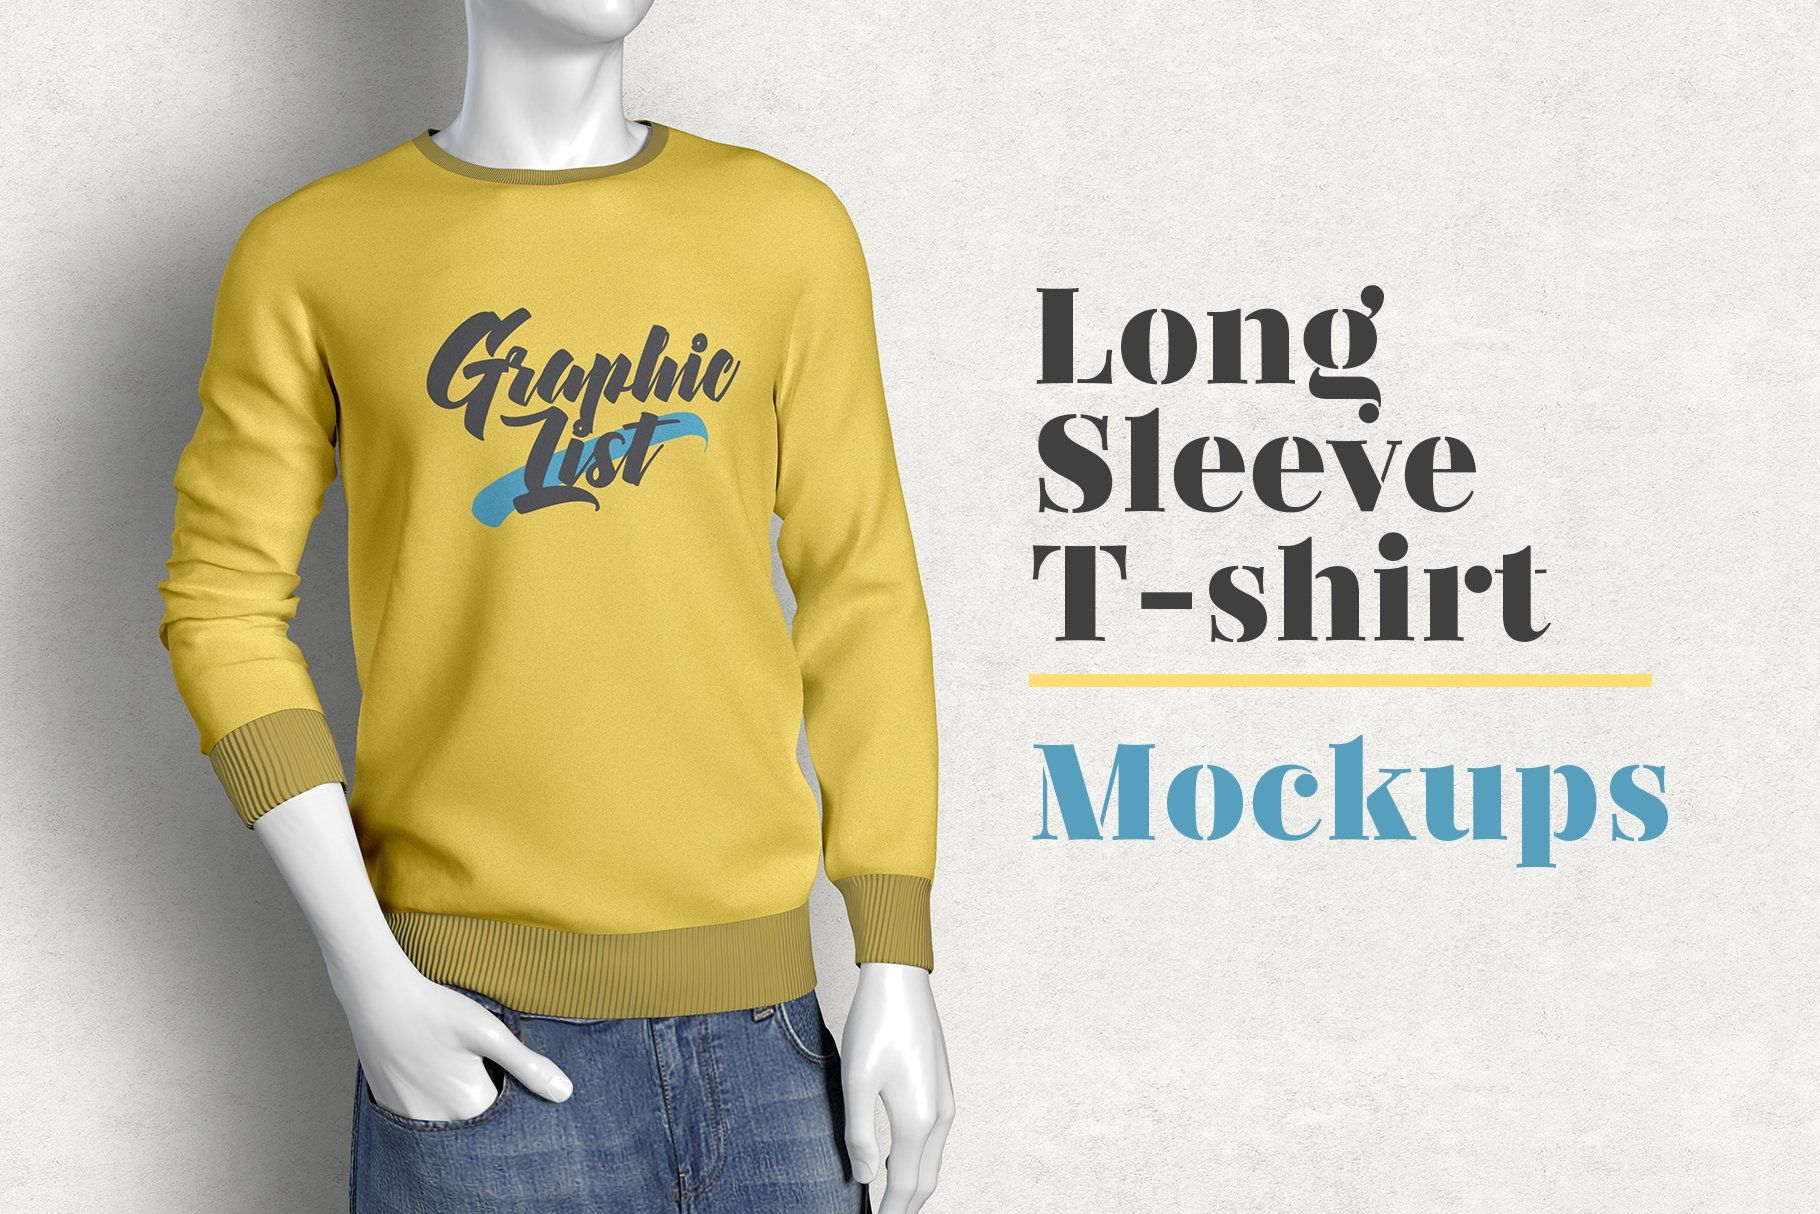 Download Long Sleeve T Shirt Mockups In 2020 Shirt Mockup Tshirt Mockup Design Mockup Free